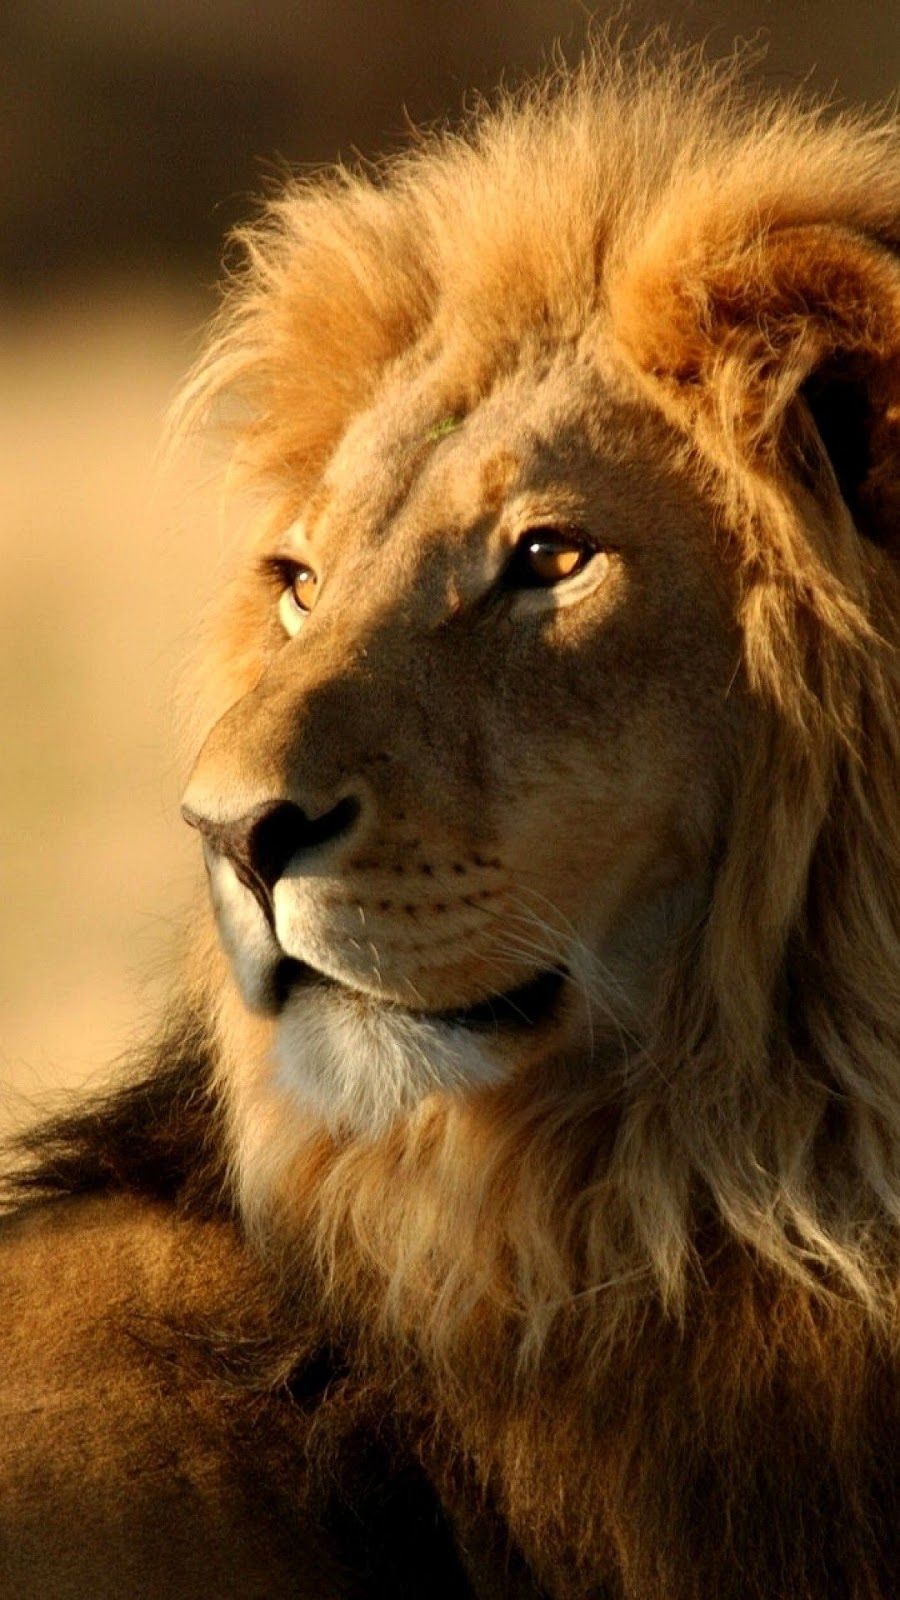 Lion Wallpaper Iphone High Quality Desktop Iphone And Android